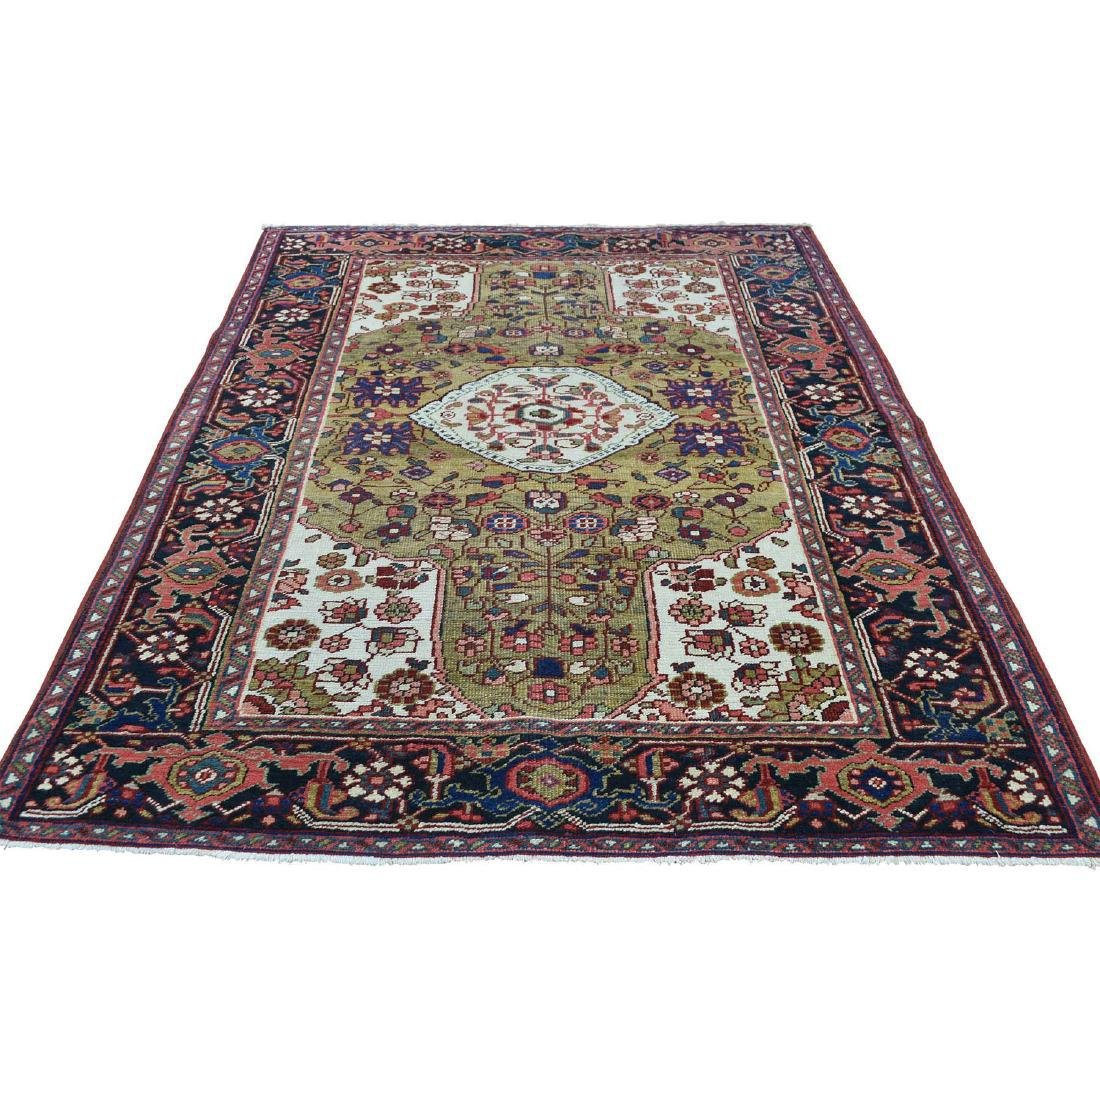 Hand-Knotted Antique Persian Heriz Rug 4.6x6.4